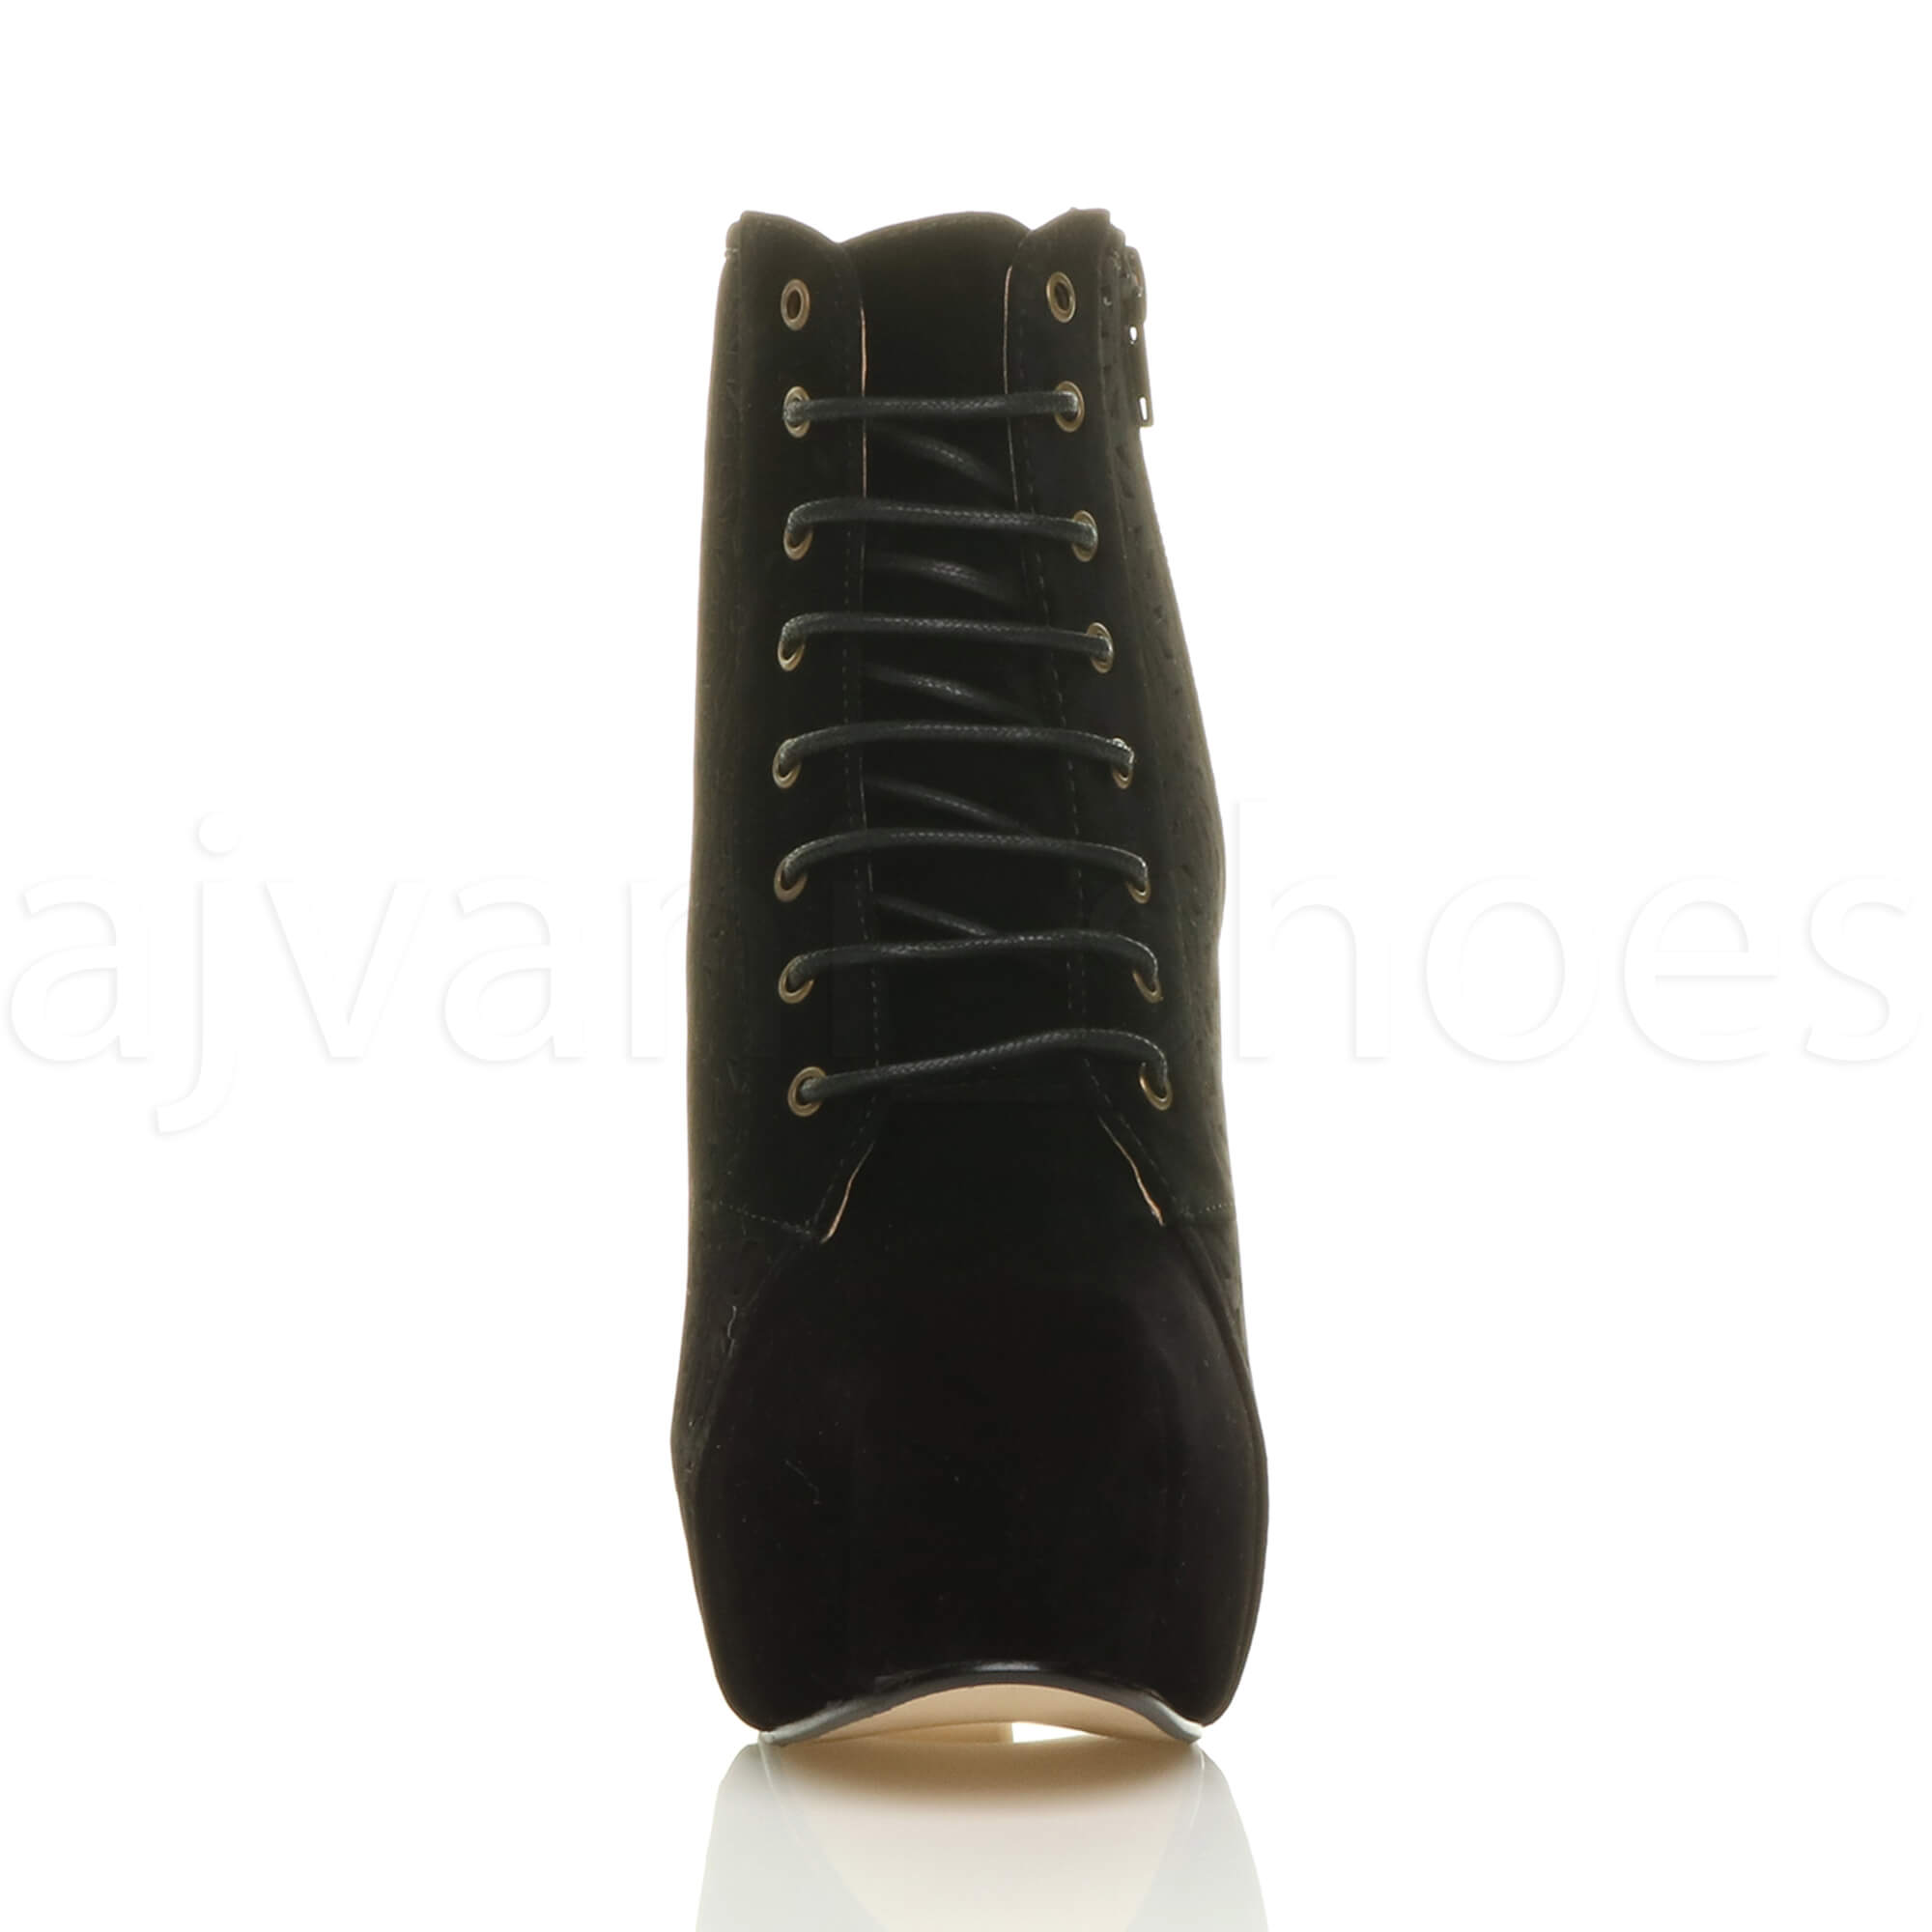 Womens-ladies-wooden-block-high-heel-platform-lace-up-zip-party-ankle-boots-size